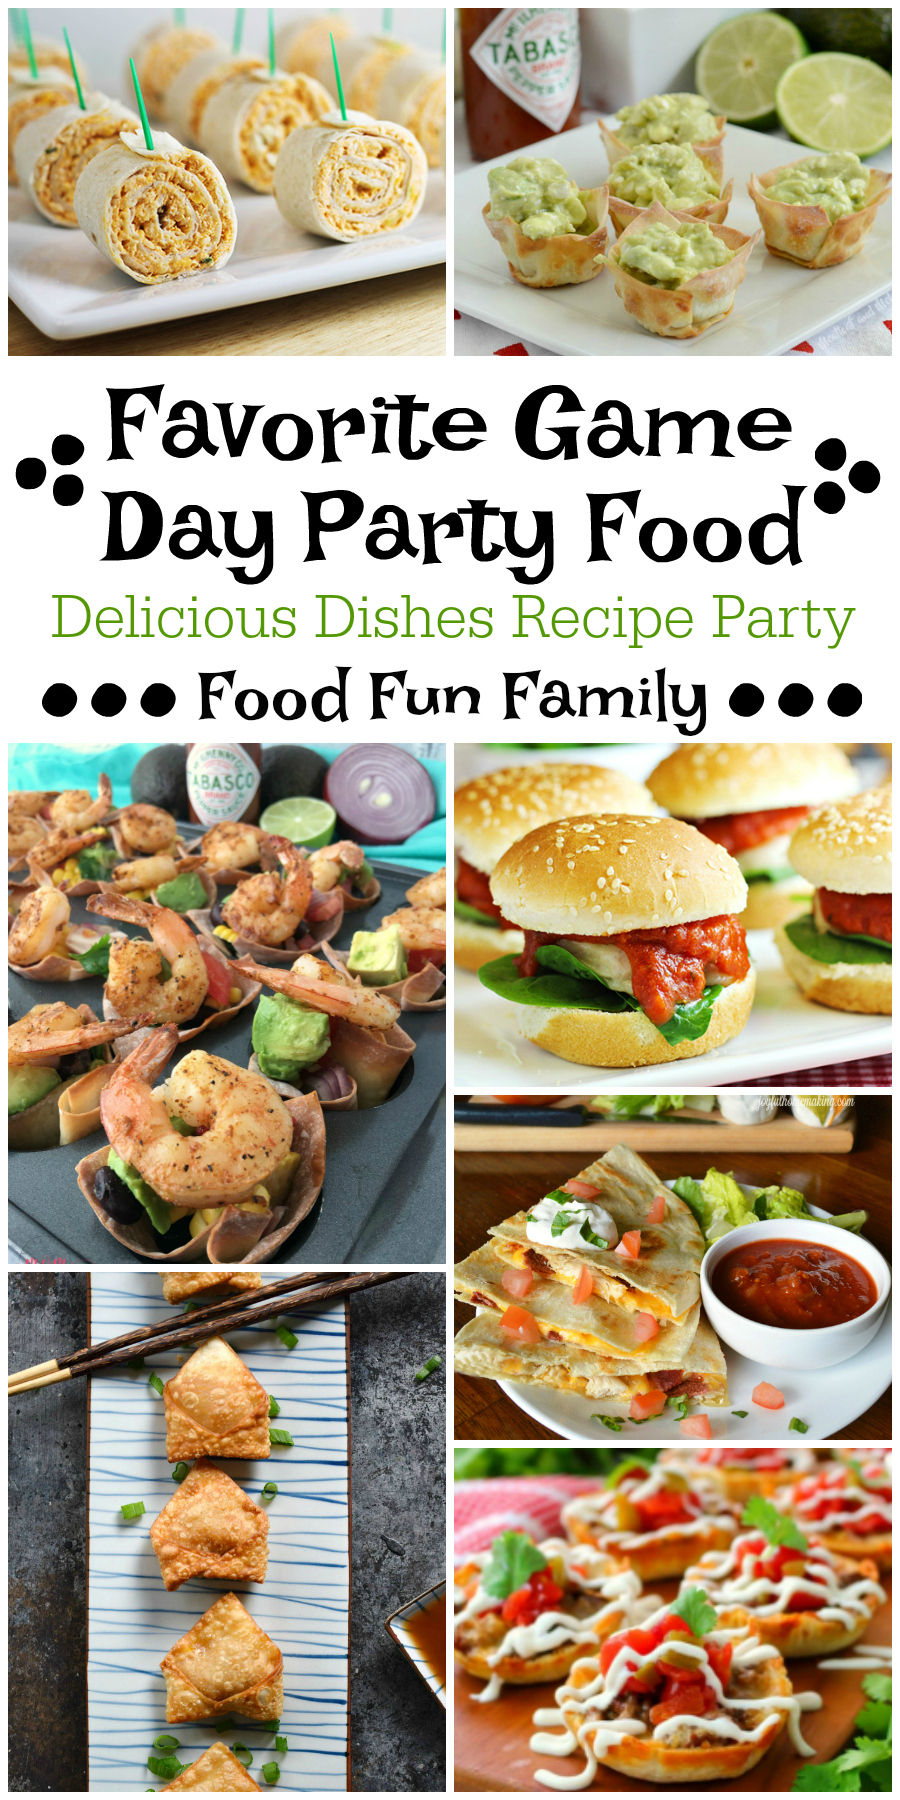 Favorite Game Day Party Food - a Delicious Dishes Recipe Party with Food Fun Family